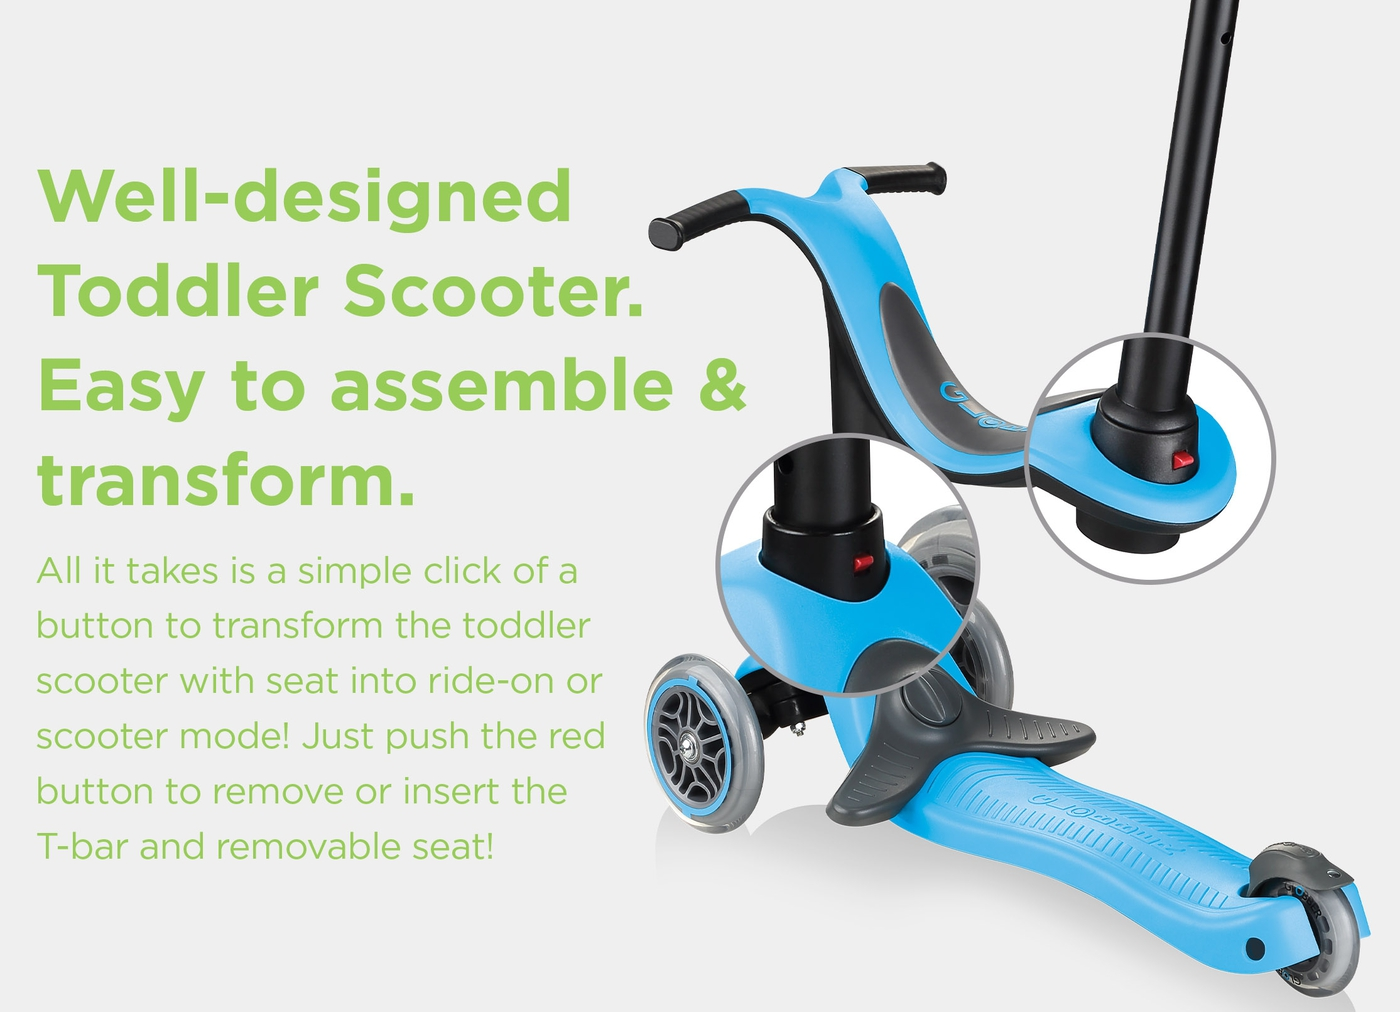 Well-designed Toddler Scooter. Easy to assemble & transform.